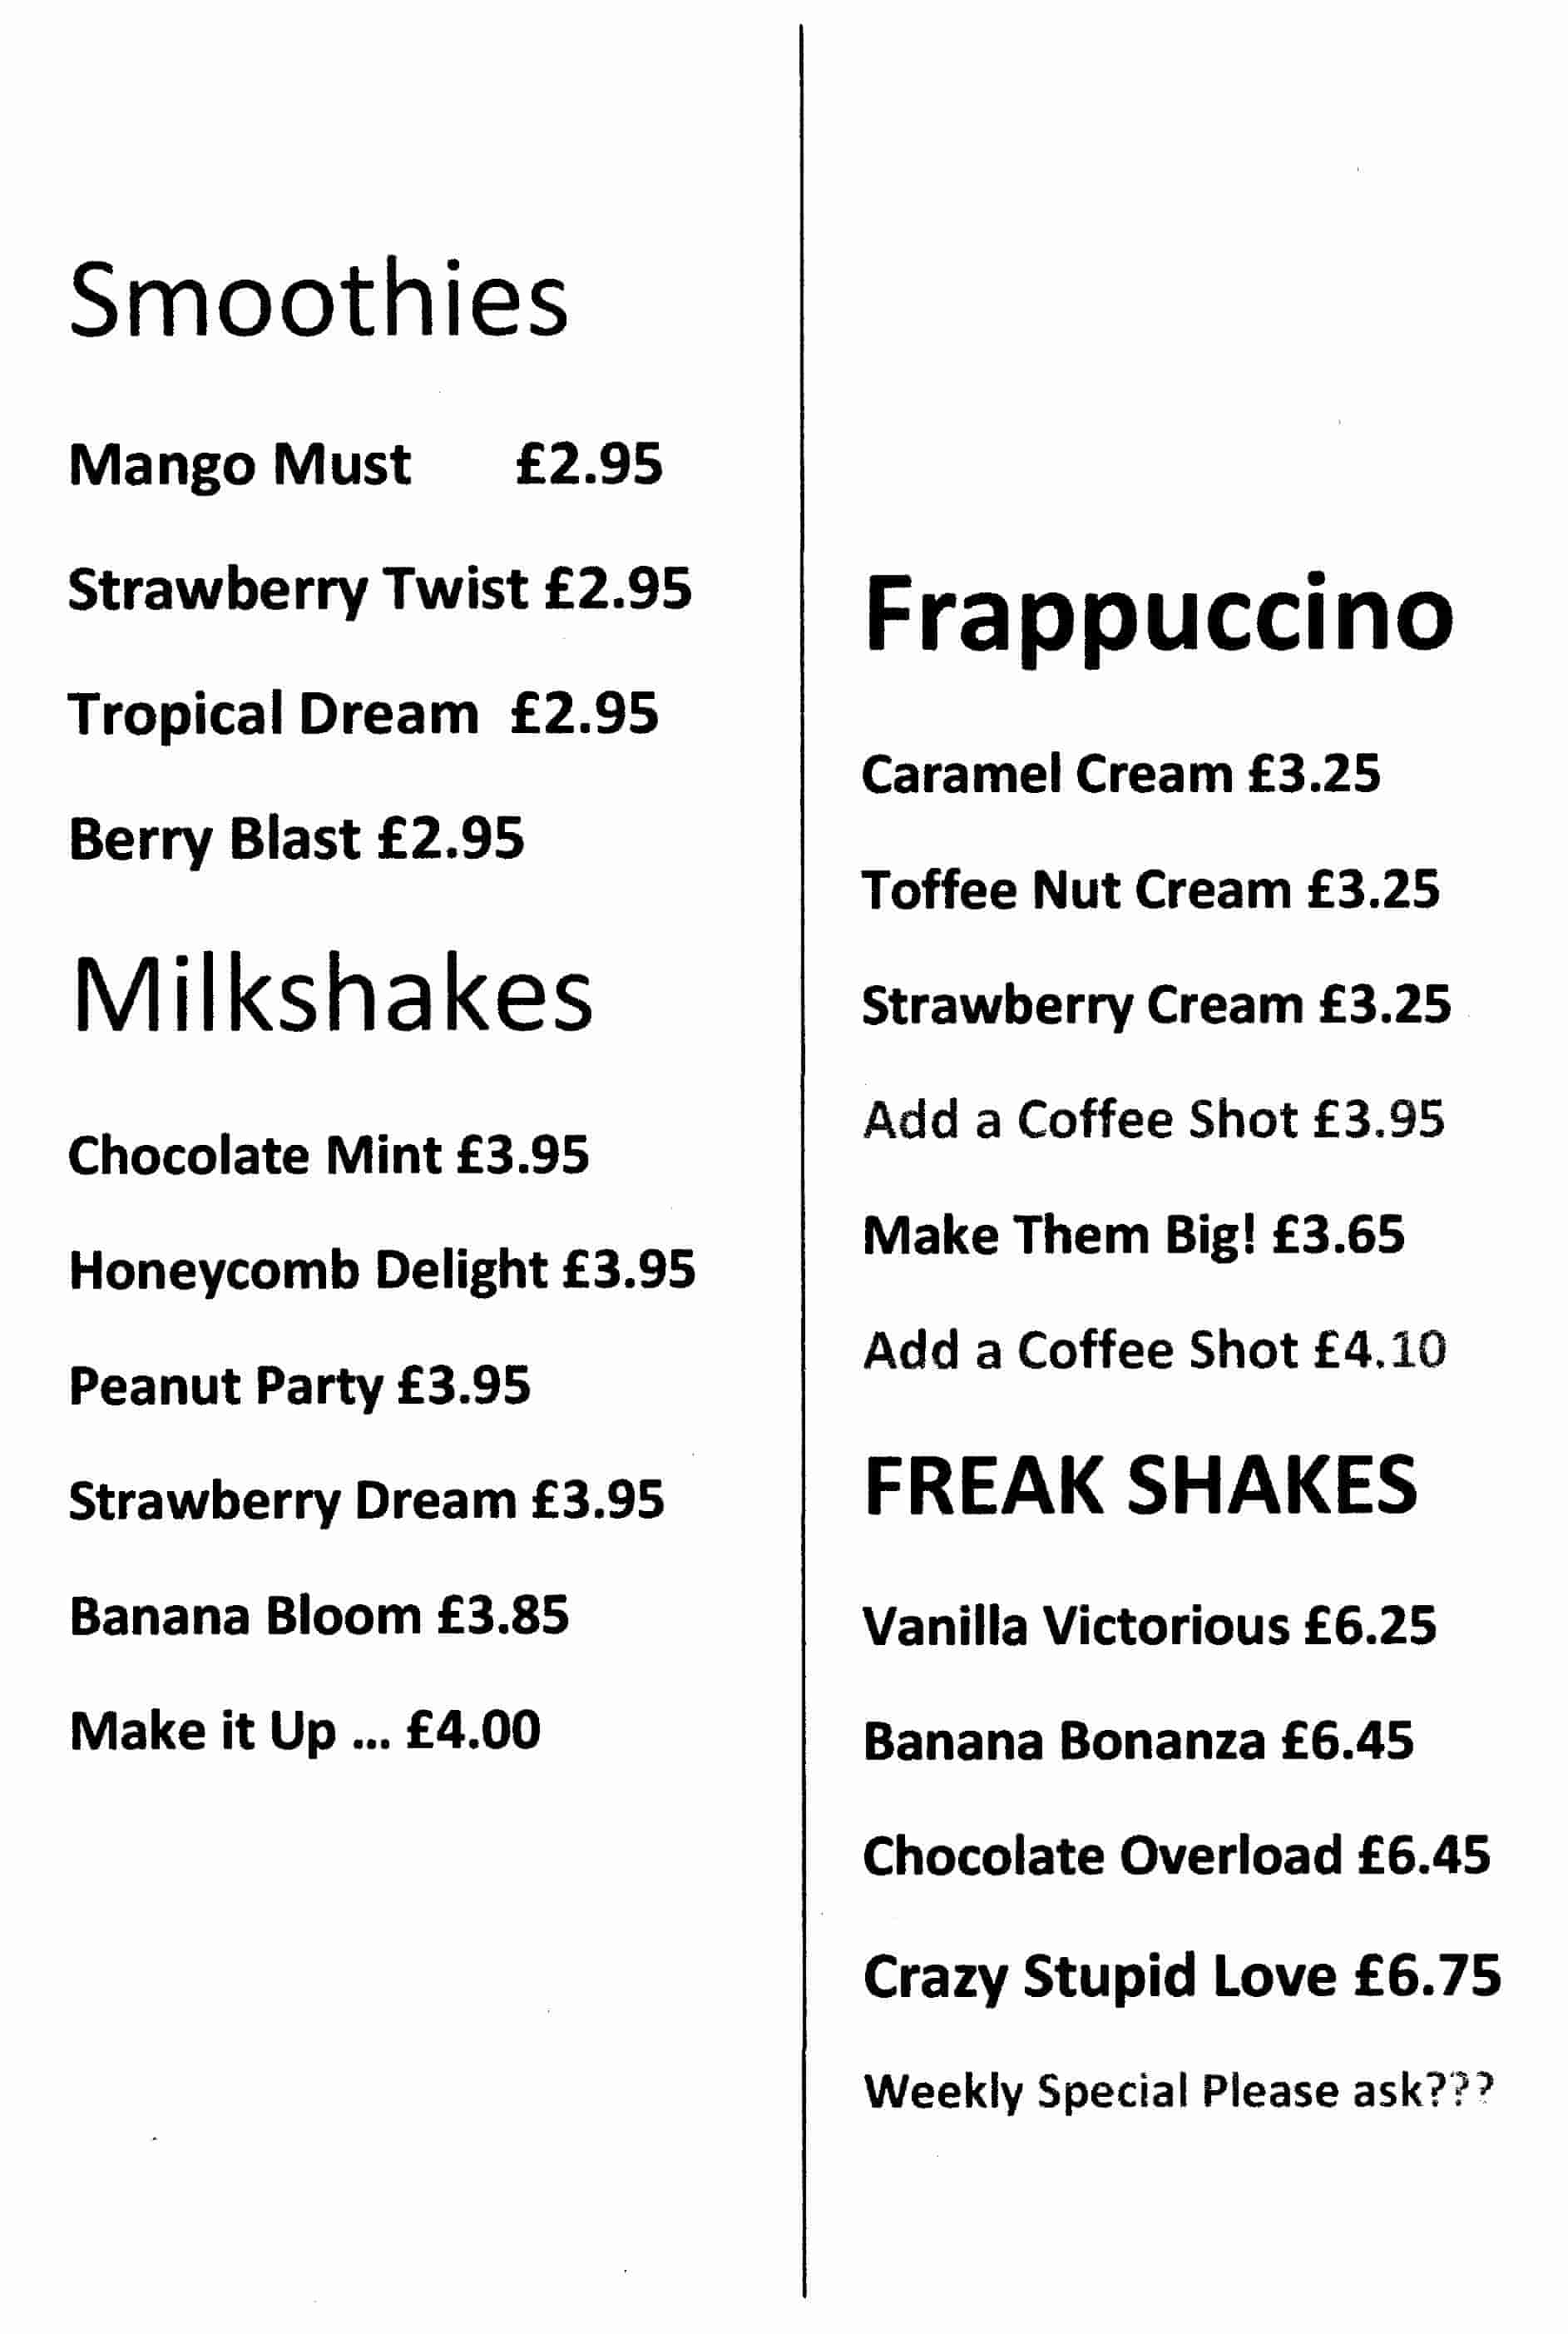 Ghiaccio Ice Cream Parlour & Dessert Lounge 181b Sunderland Road Harton Village South Shields NE34 6AD Menu 1